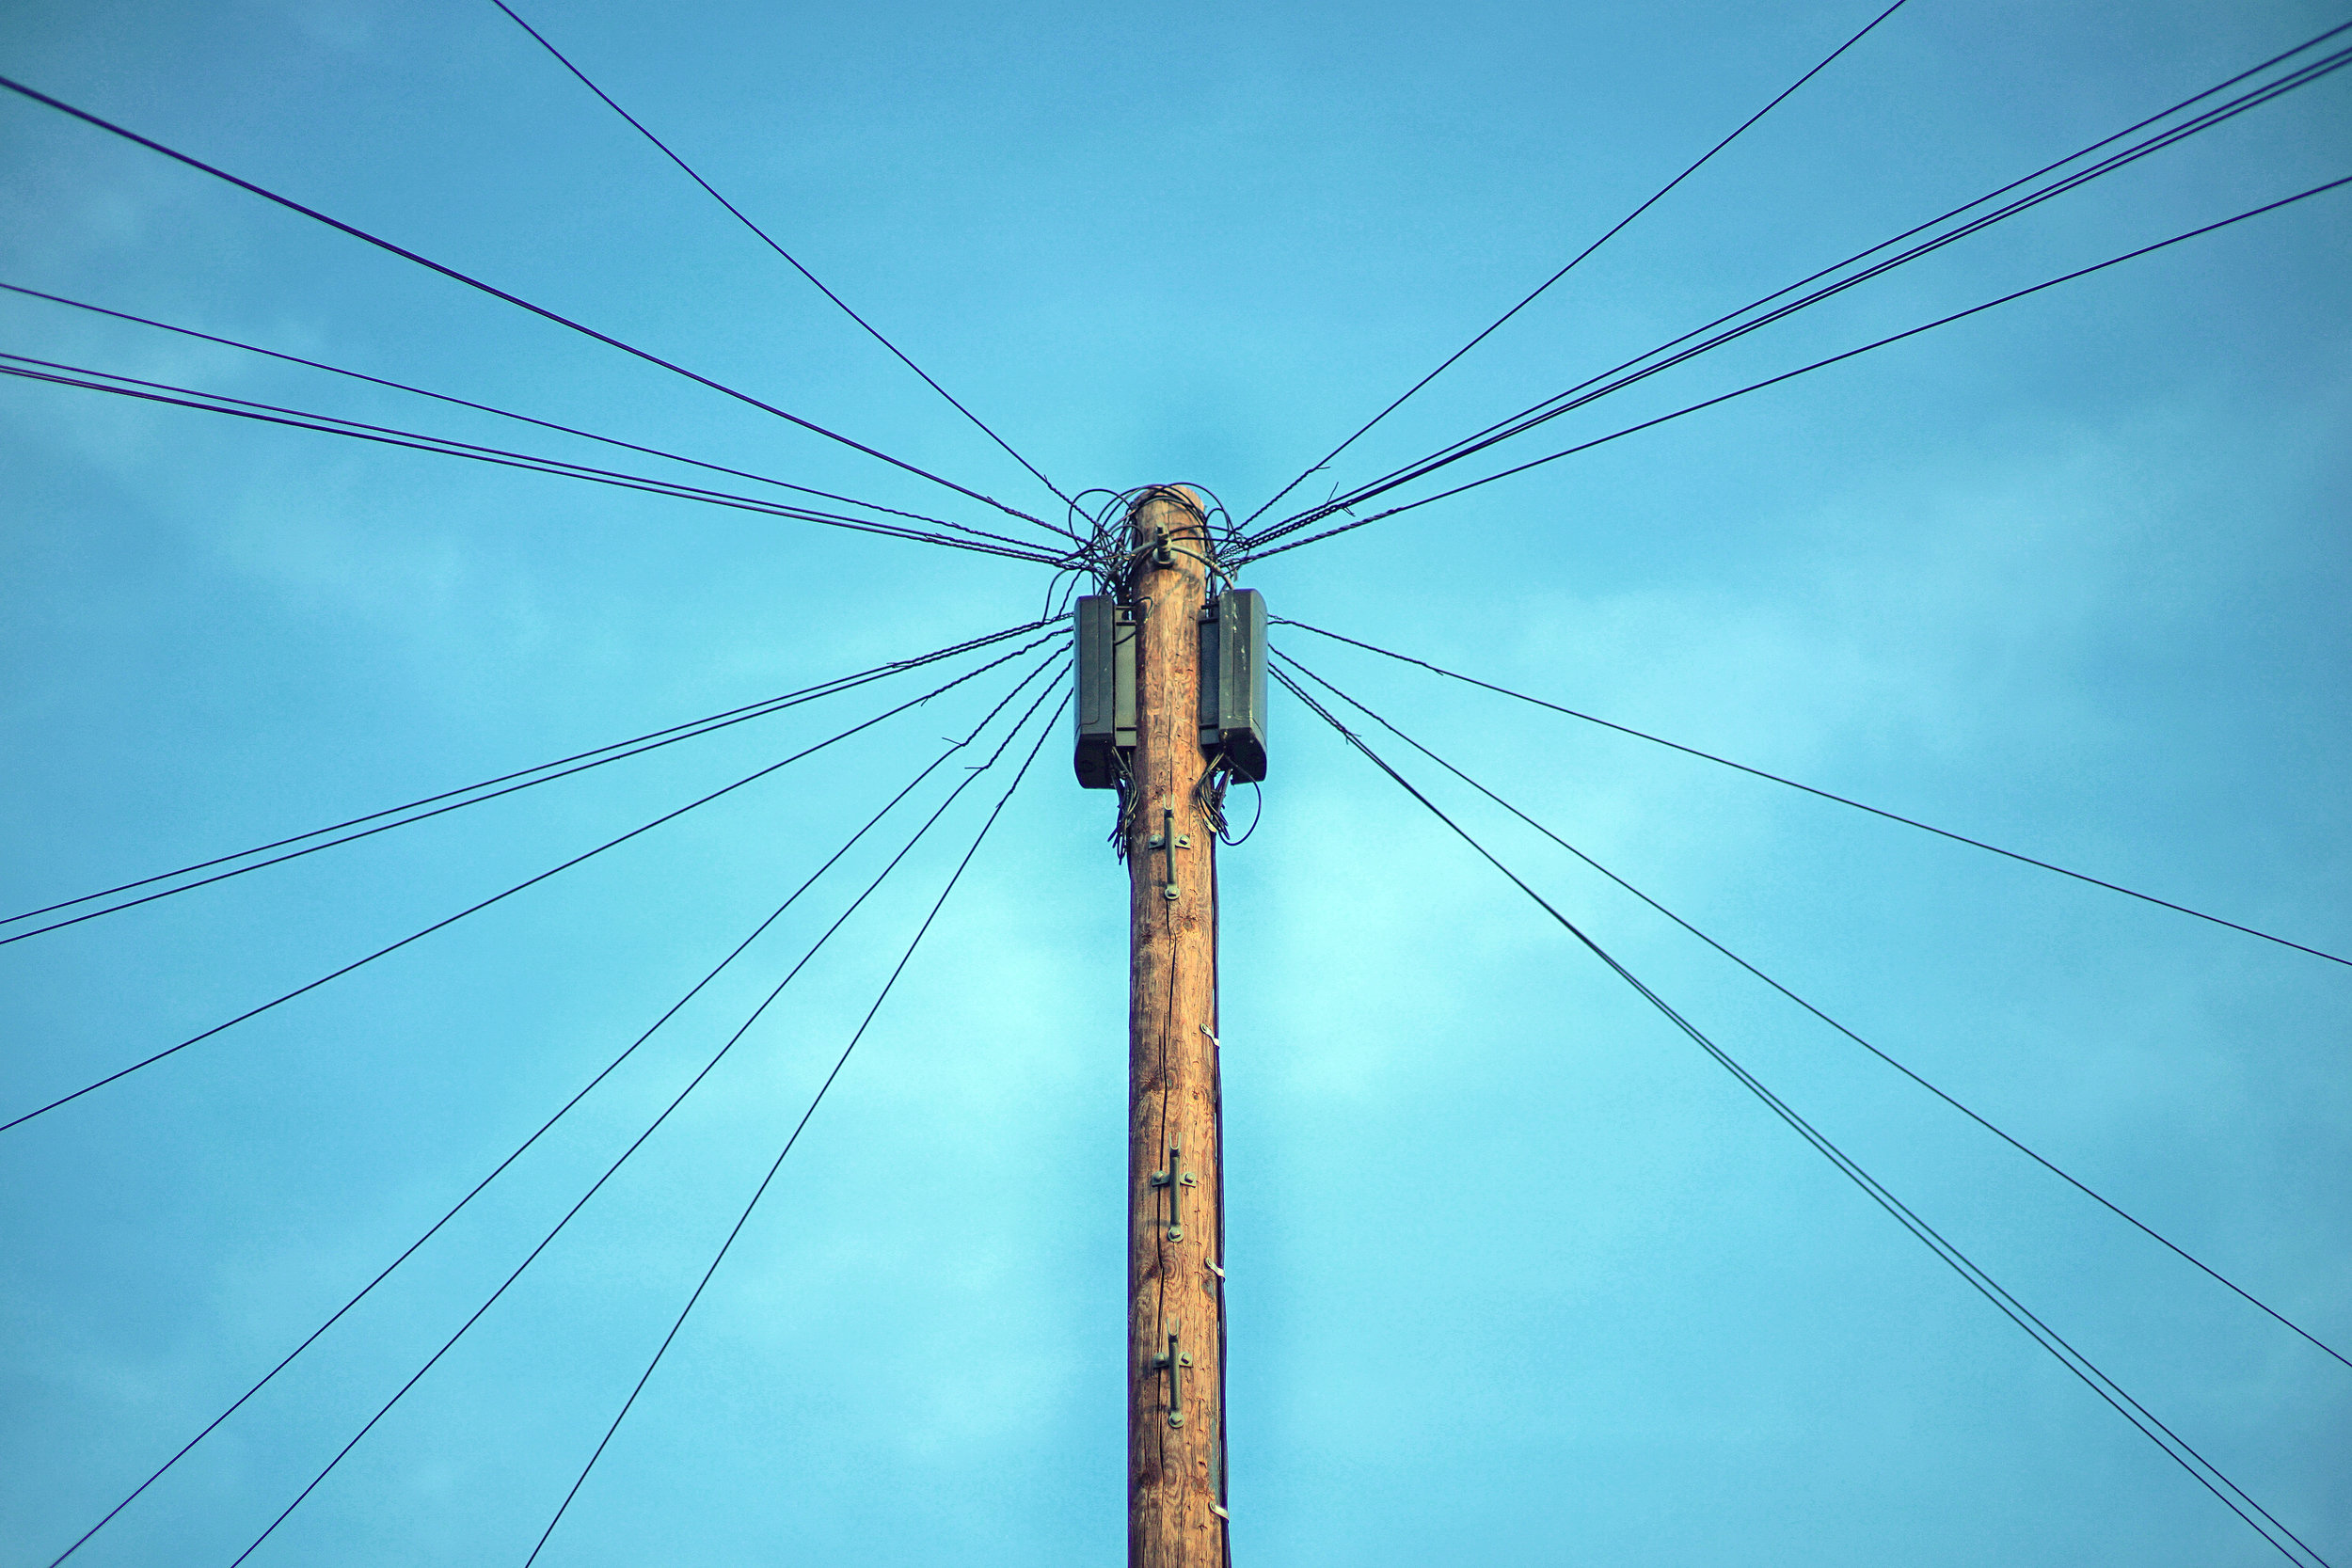 Lock in your rates - Having a fixed energy bill allows you to escape the rate hikes of local utility companies and pay a faction of what your neighbors will be paying in ten years.